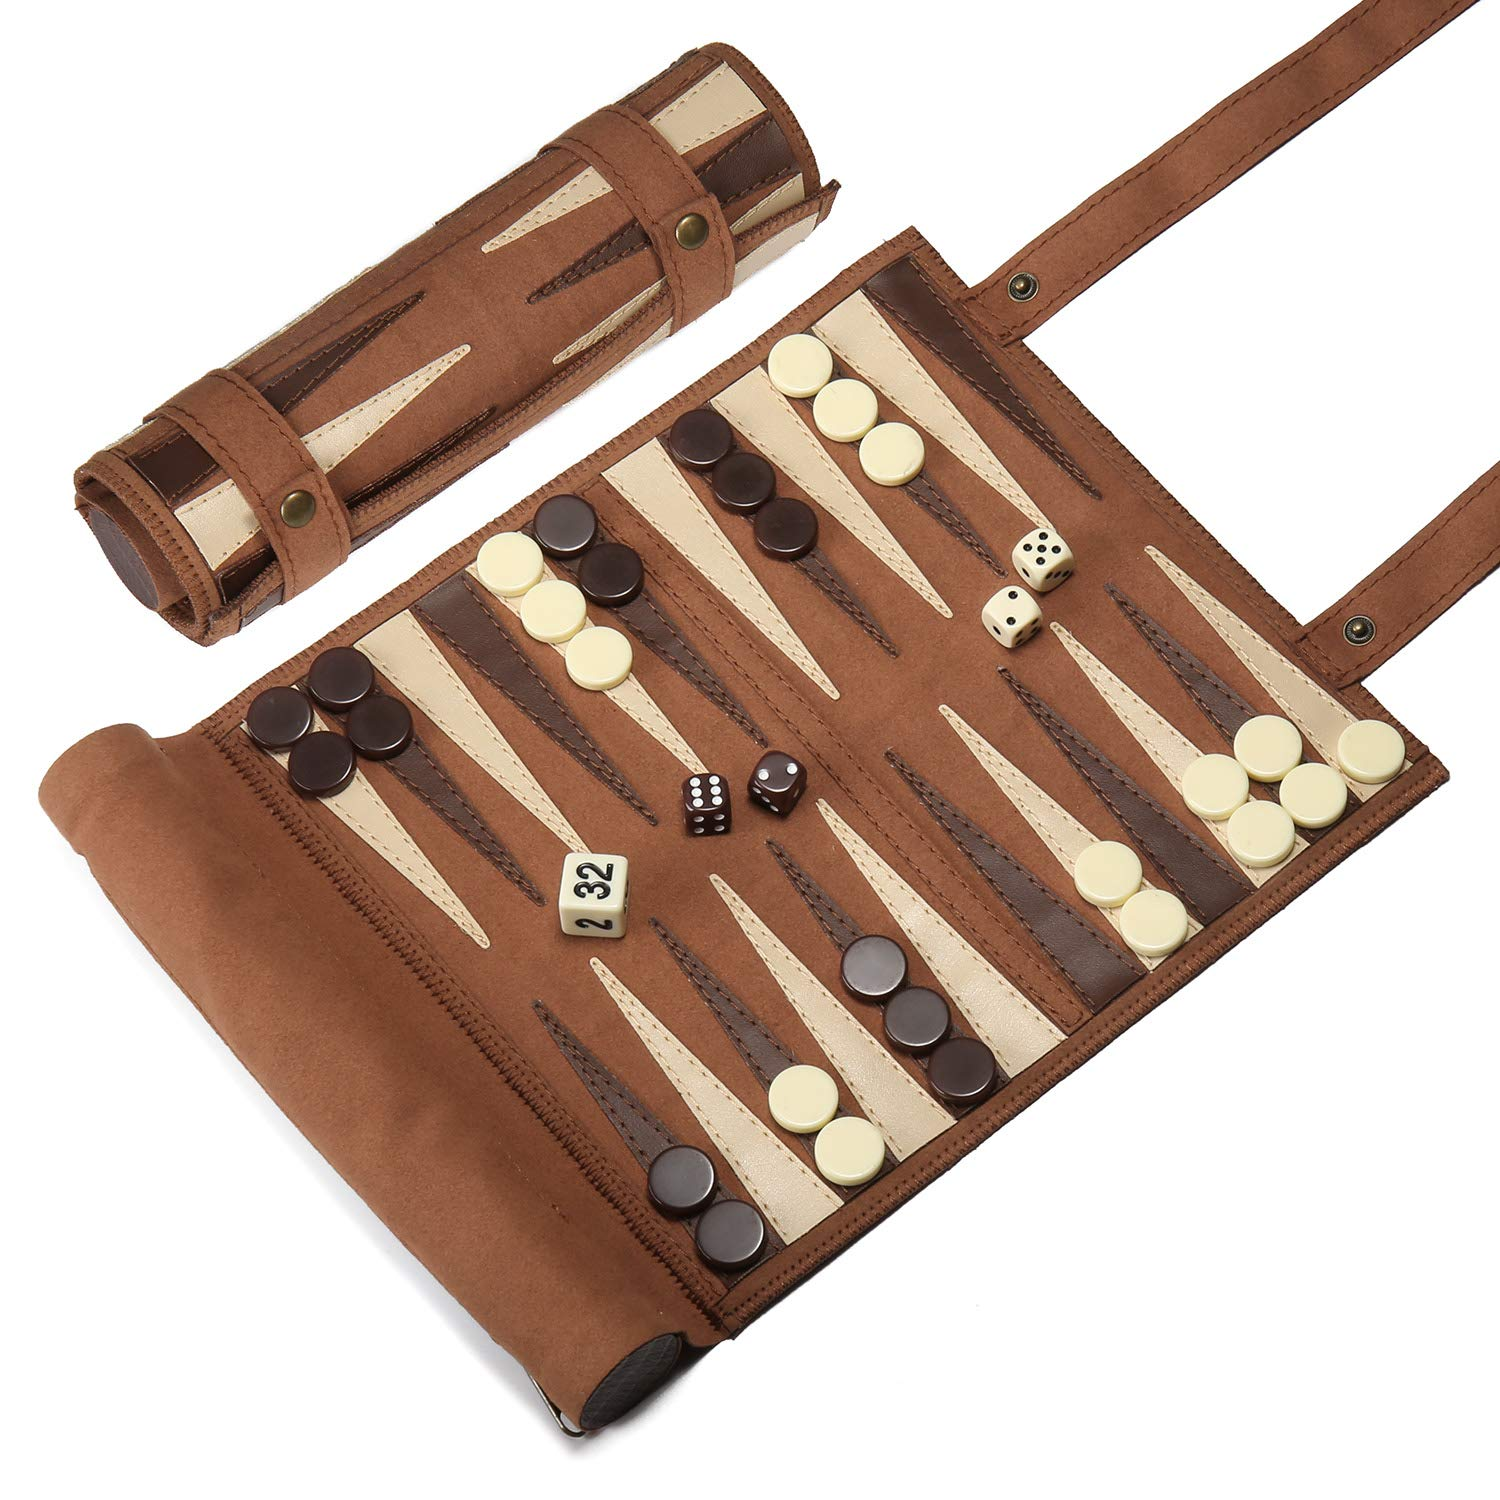 Woodronic Roll Up 3 in 1 Game Set, Backgammon Chess Checker Travel Game Set, Luxirous Suede Leather Travel Size with Gift Packaging, Brown